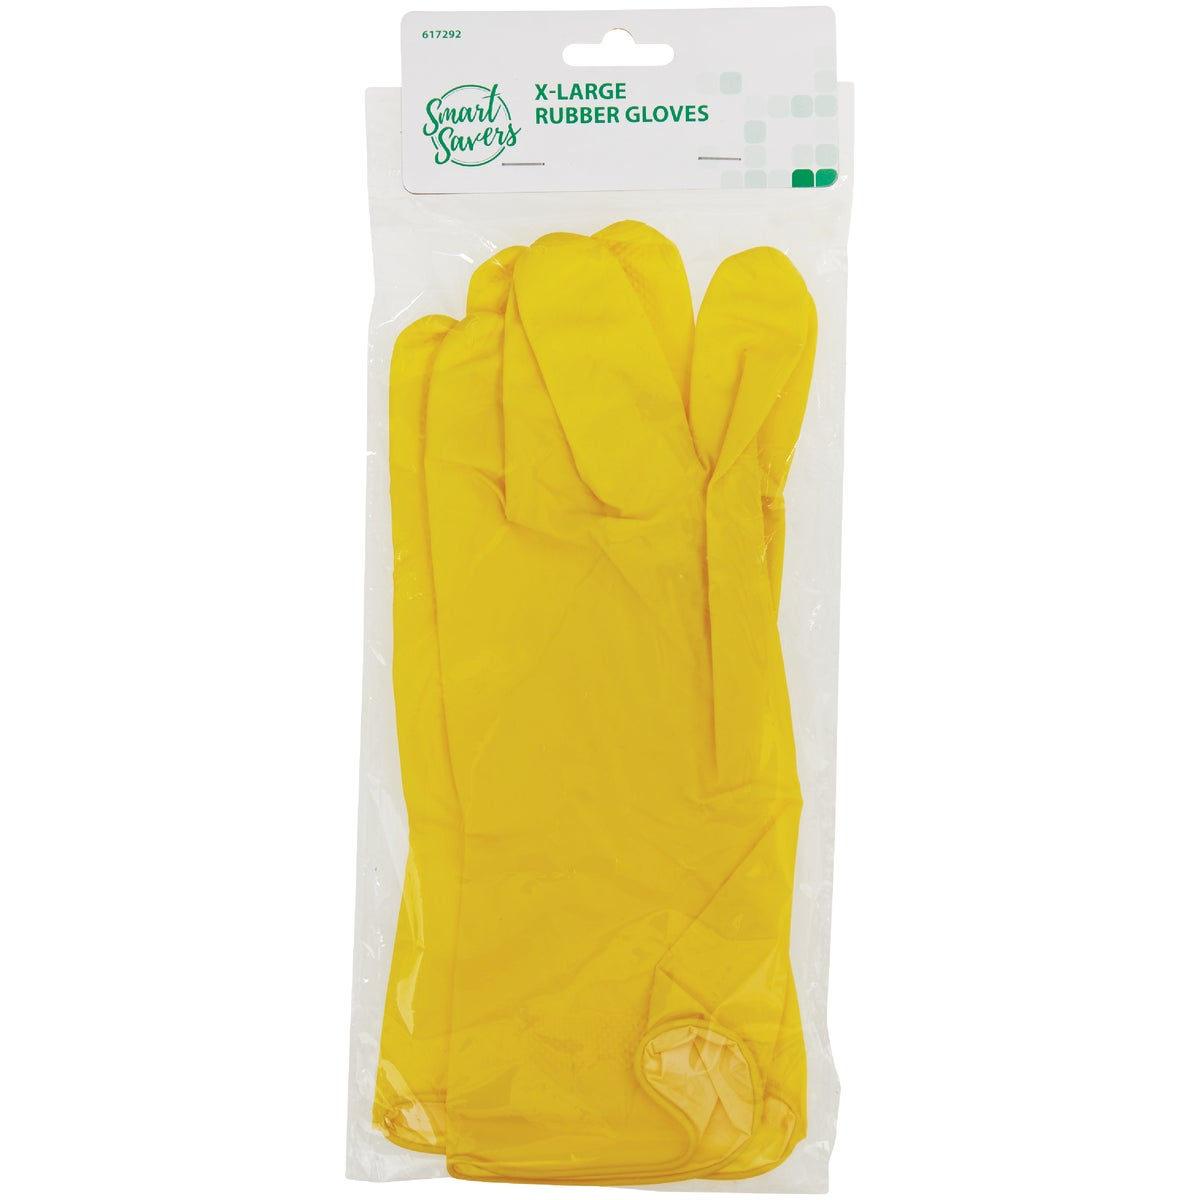 X-LARGE KITCHEN GLOVES